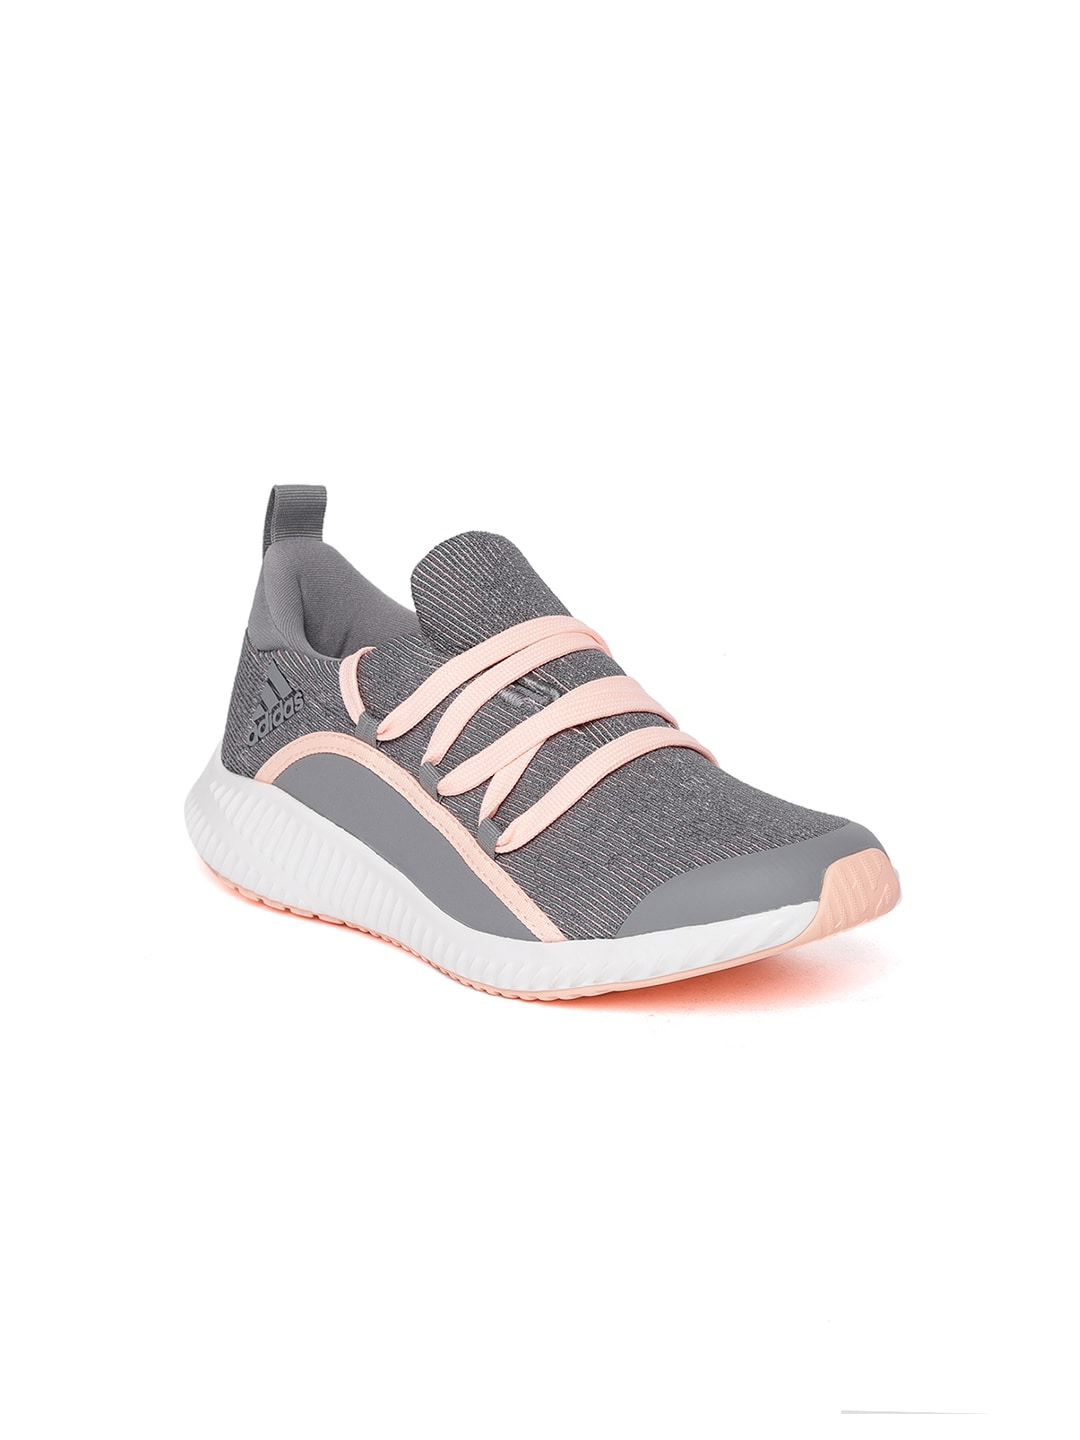 Adidas Velcro Shoes - Buy Adidas Velcro Shoes online in India e95d34027